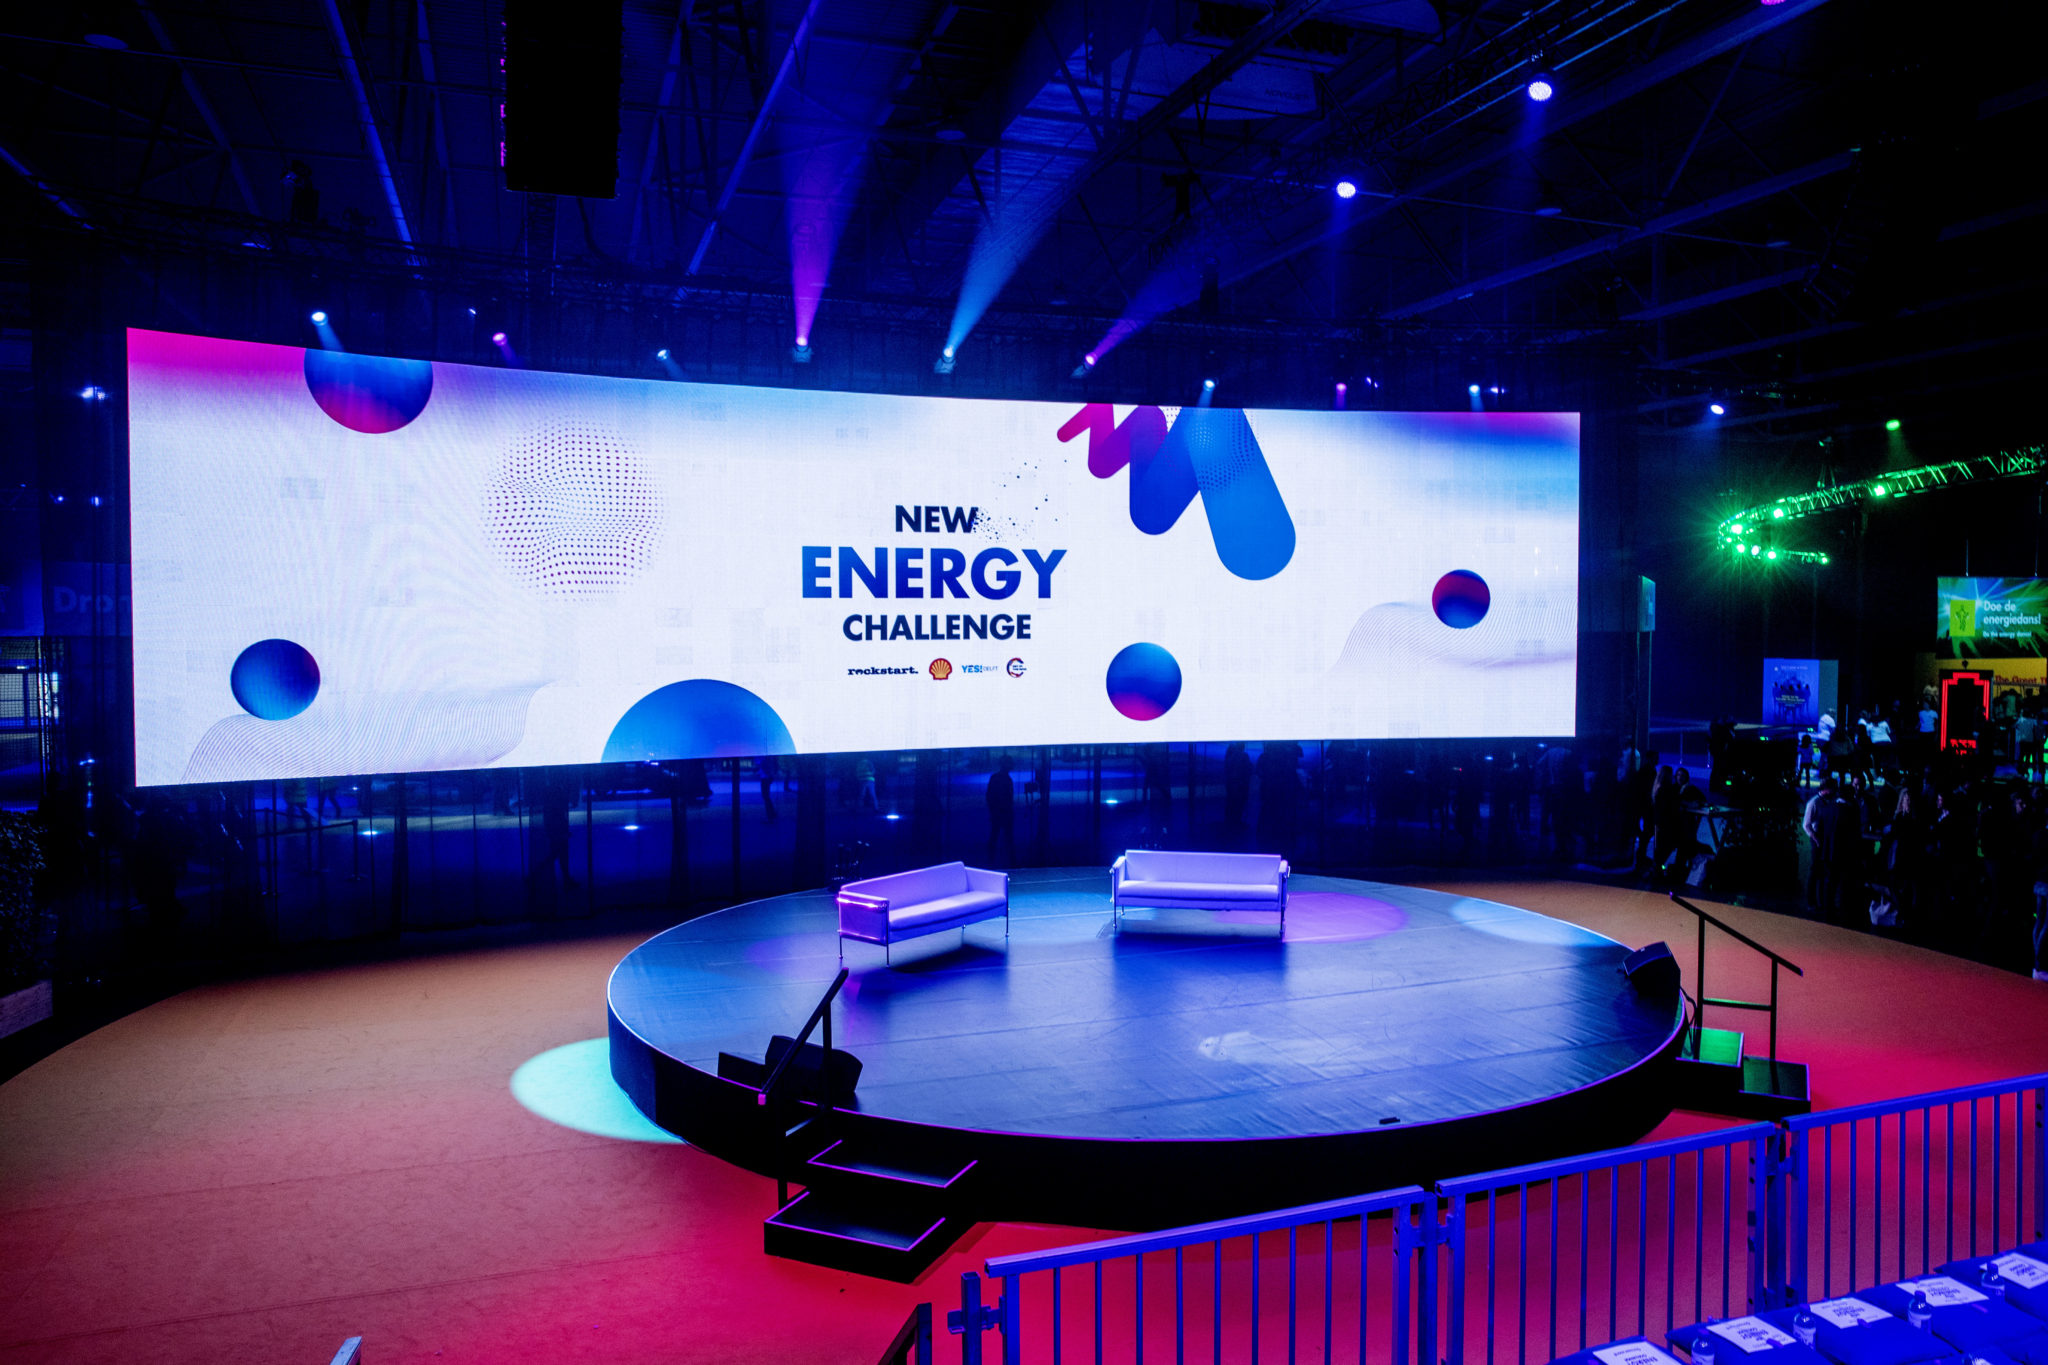 The New Energy Challenge stage design